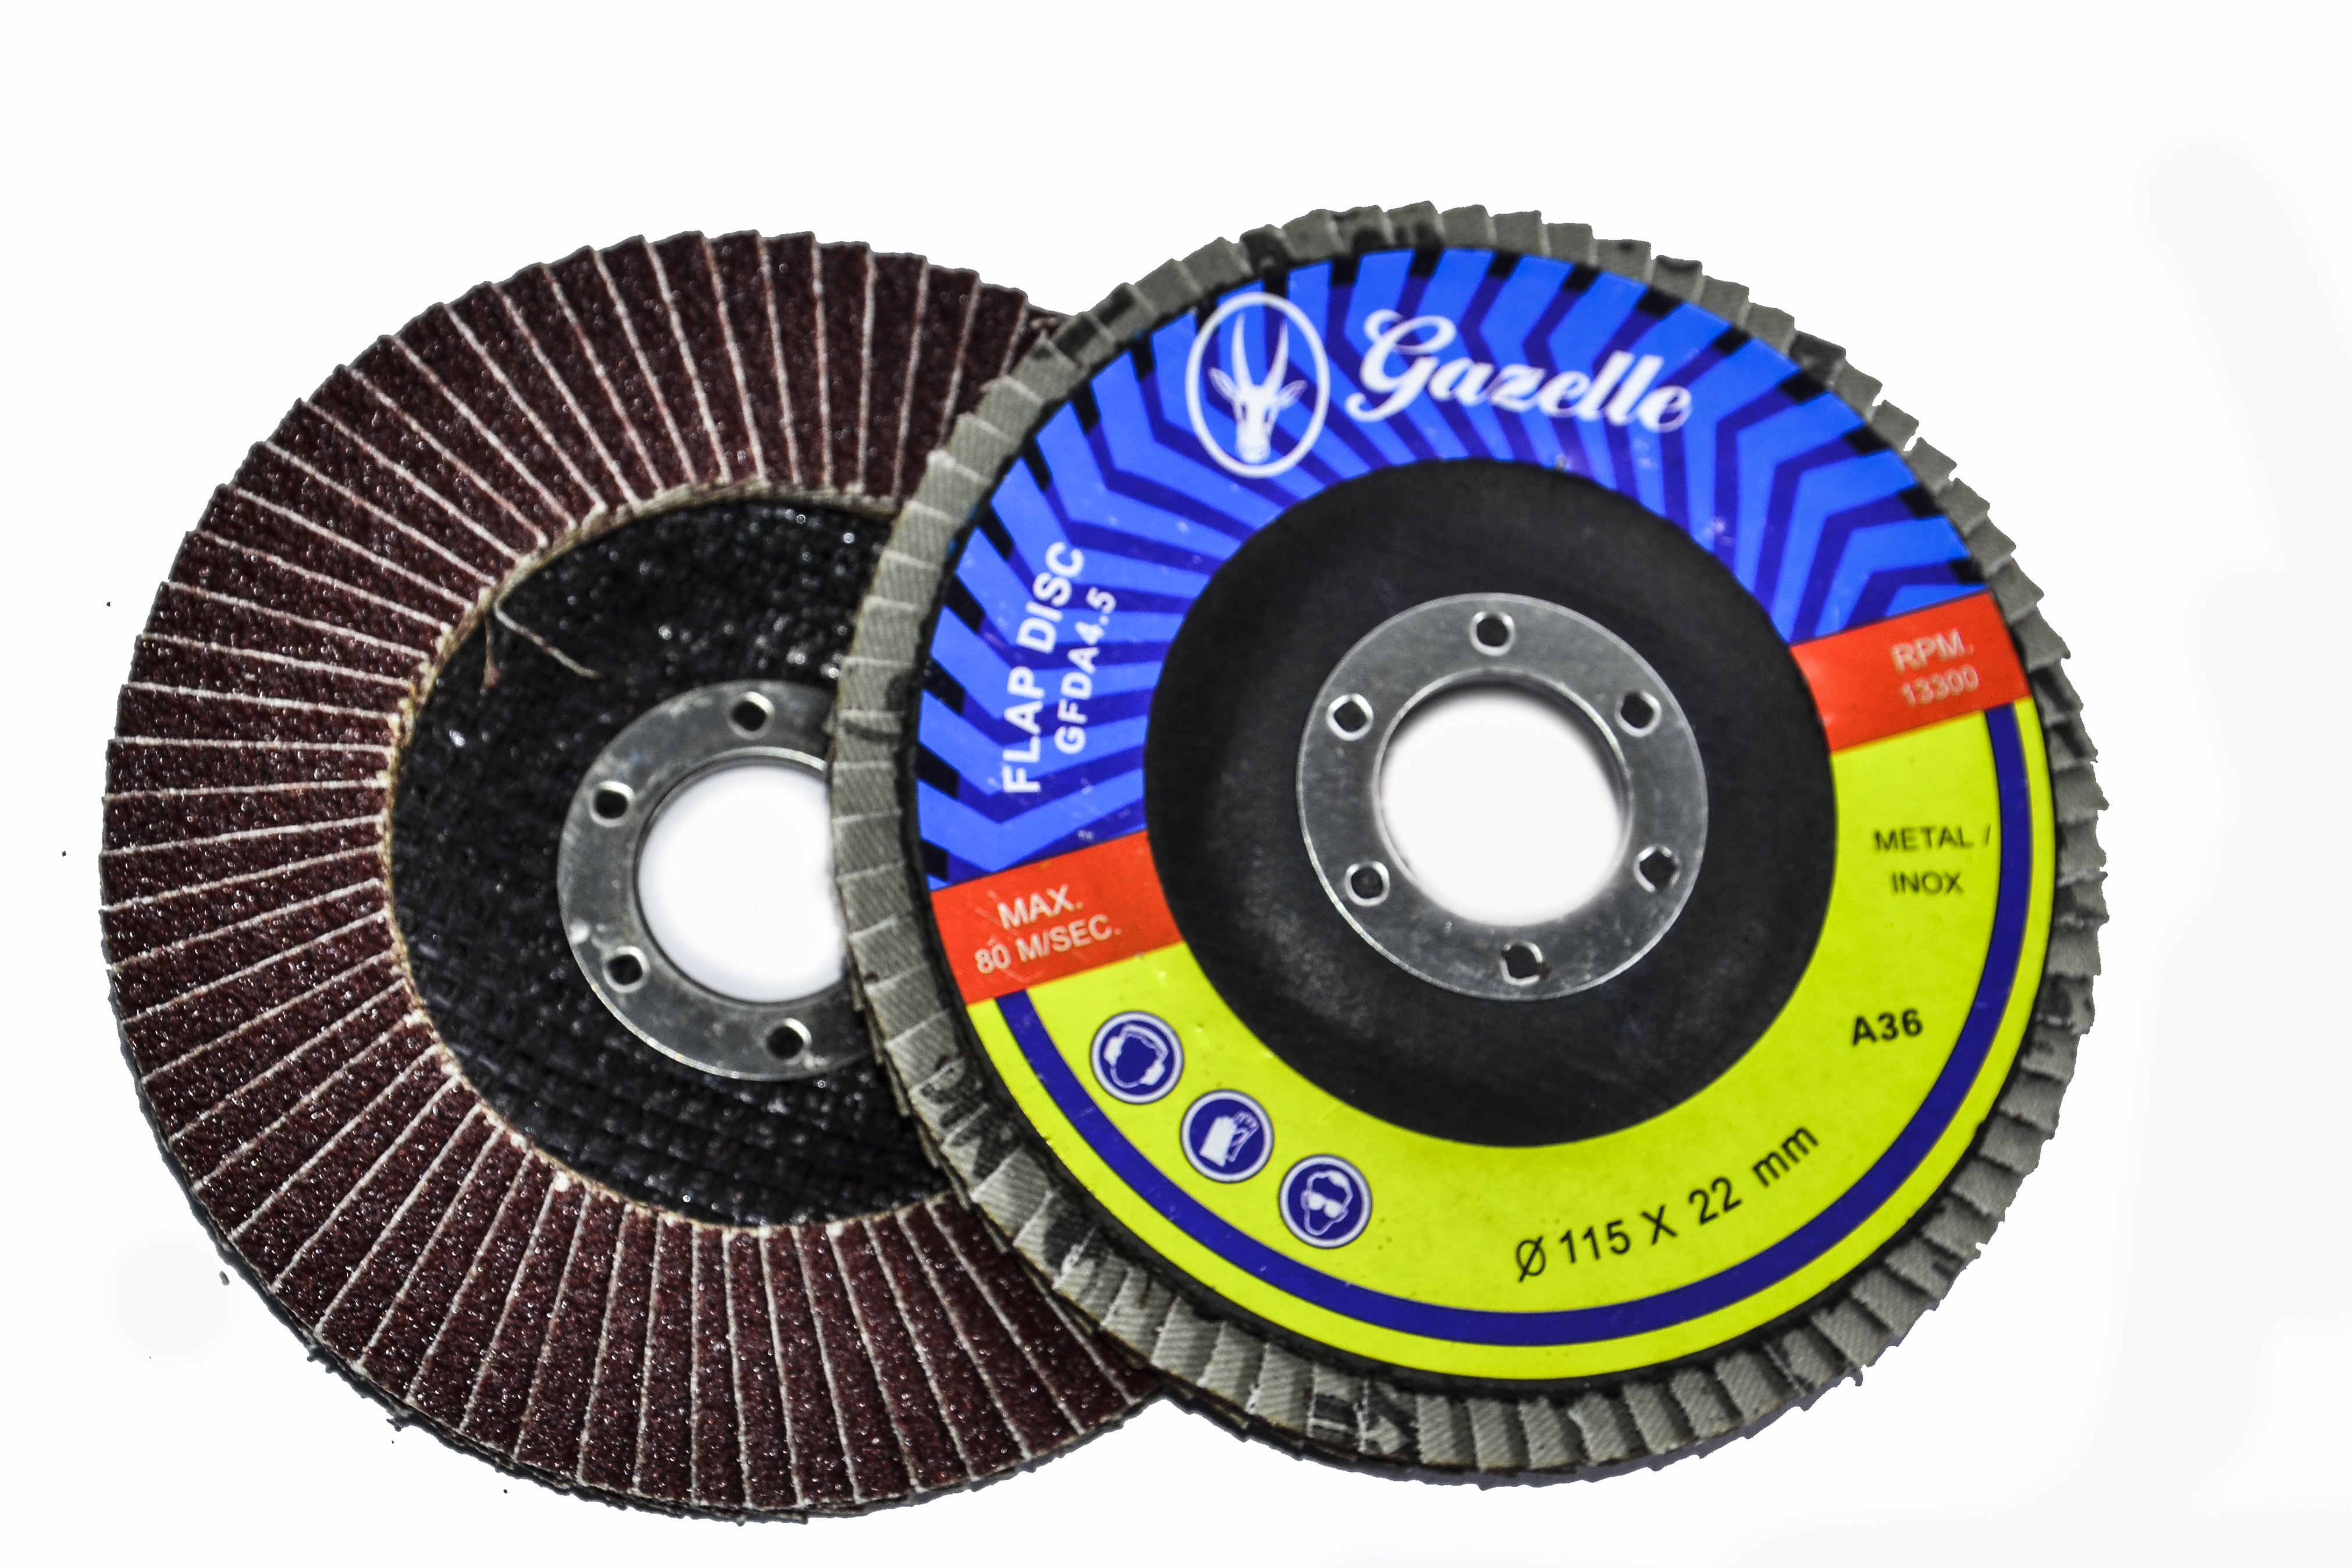 GAZELLE GFDA45100G - Flap Disc 4.5in – 115mm x 100Grit Aluminium Oxide